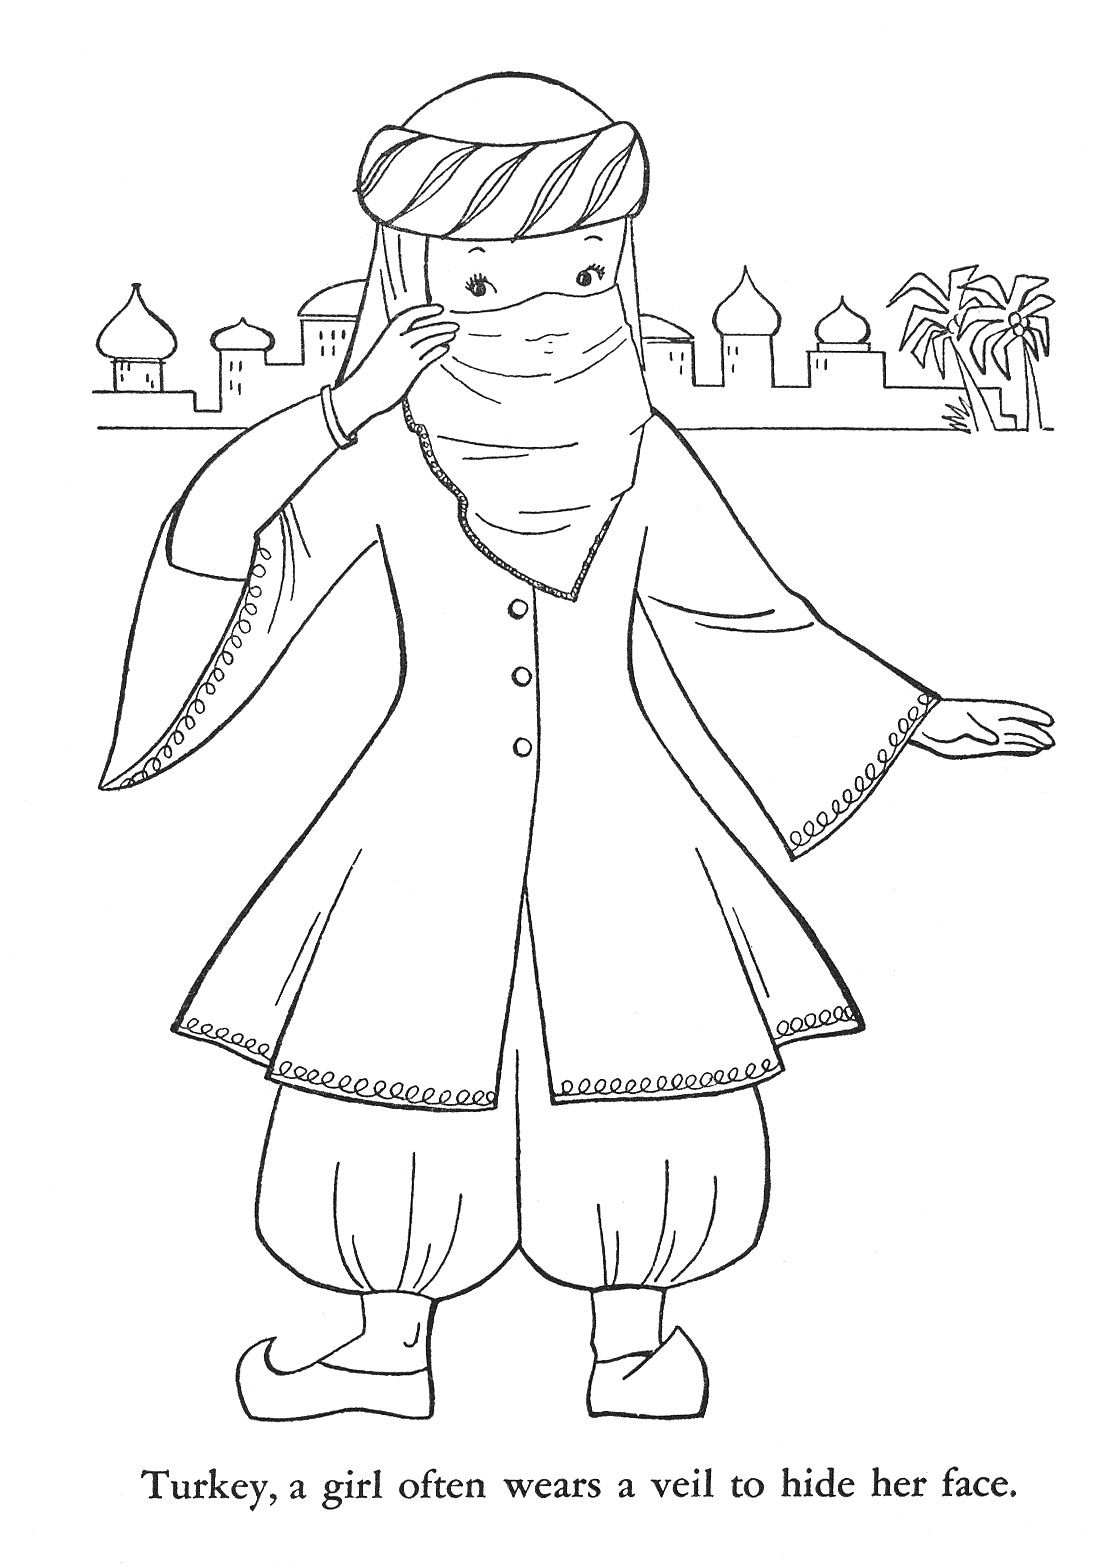 Children Of Other Lands Kids Around The World Turkey Culture Coloring Pages